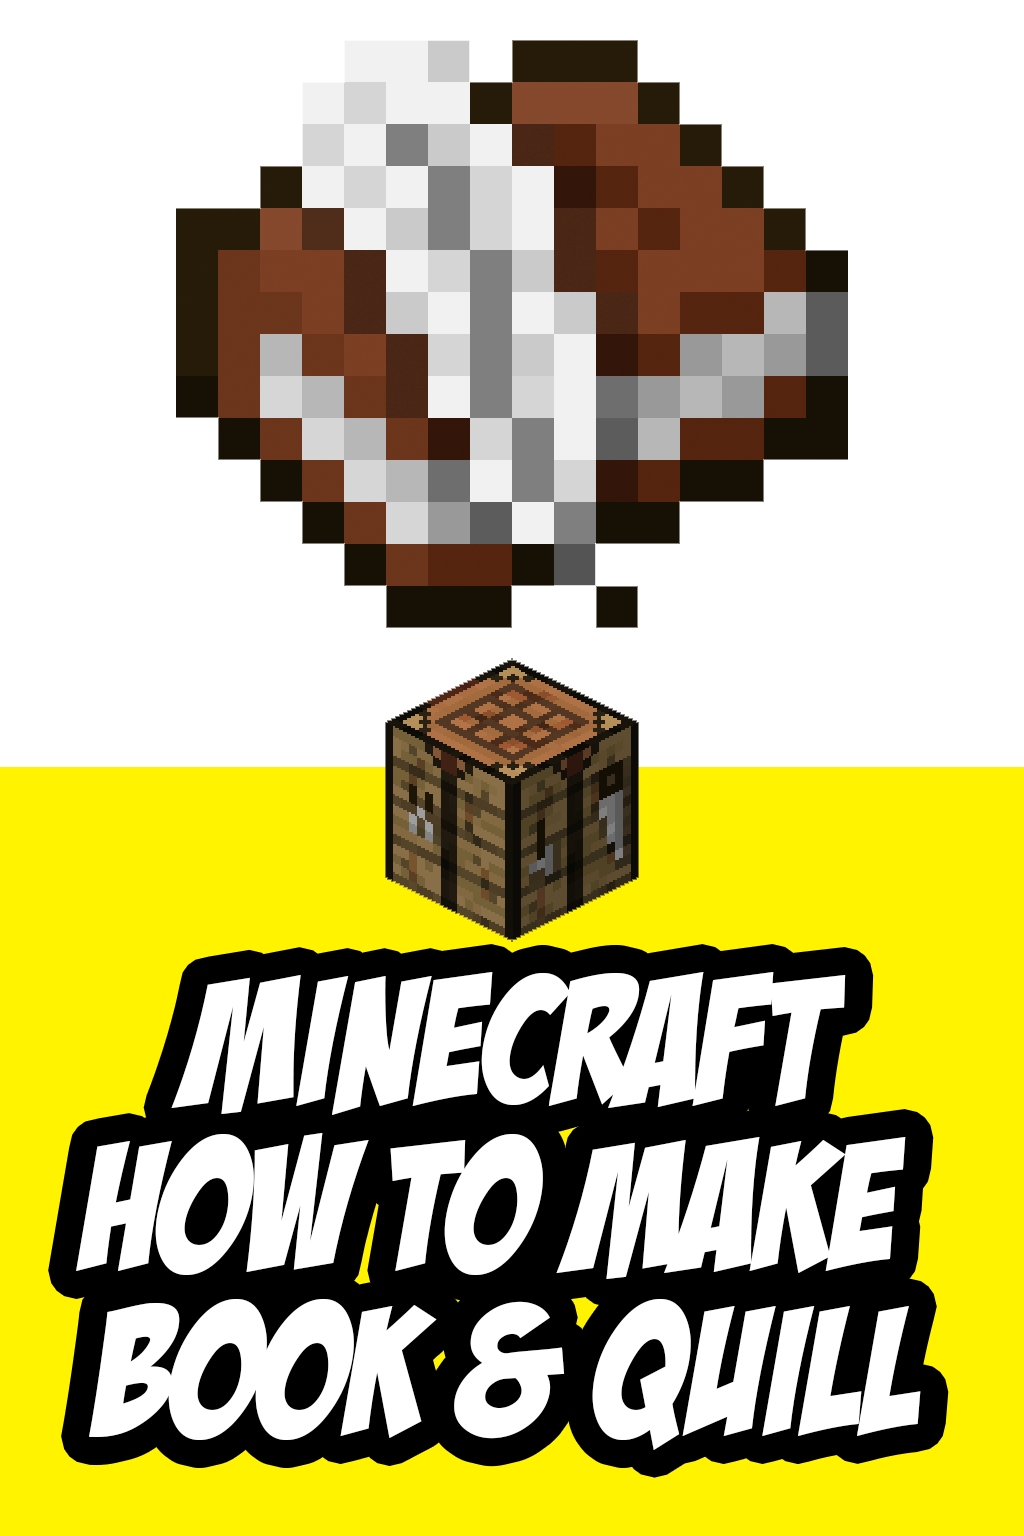 How To Make A Book And Quill In Minecraft Book Making Quilling Minecraft